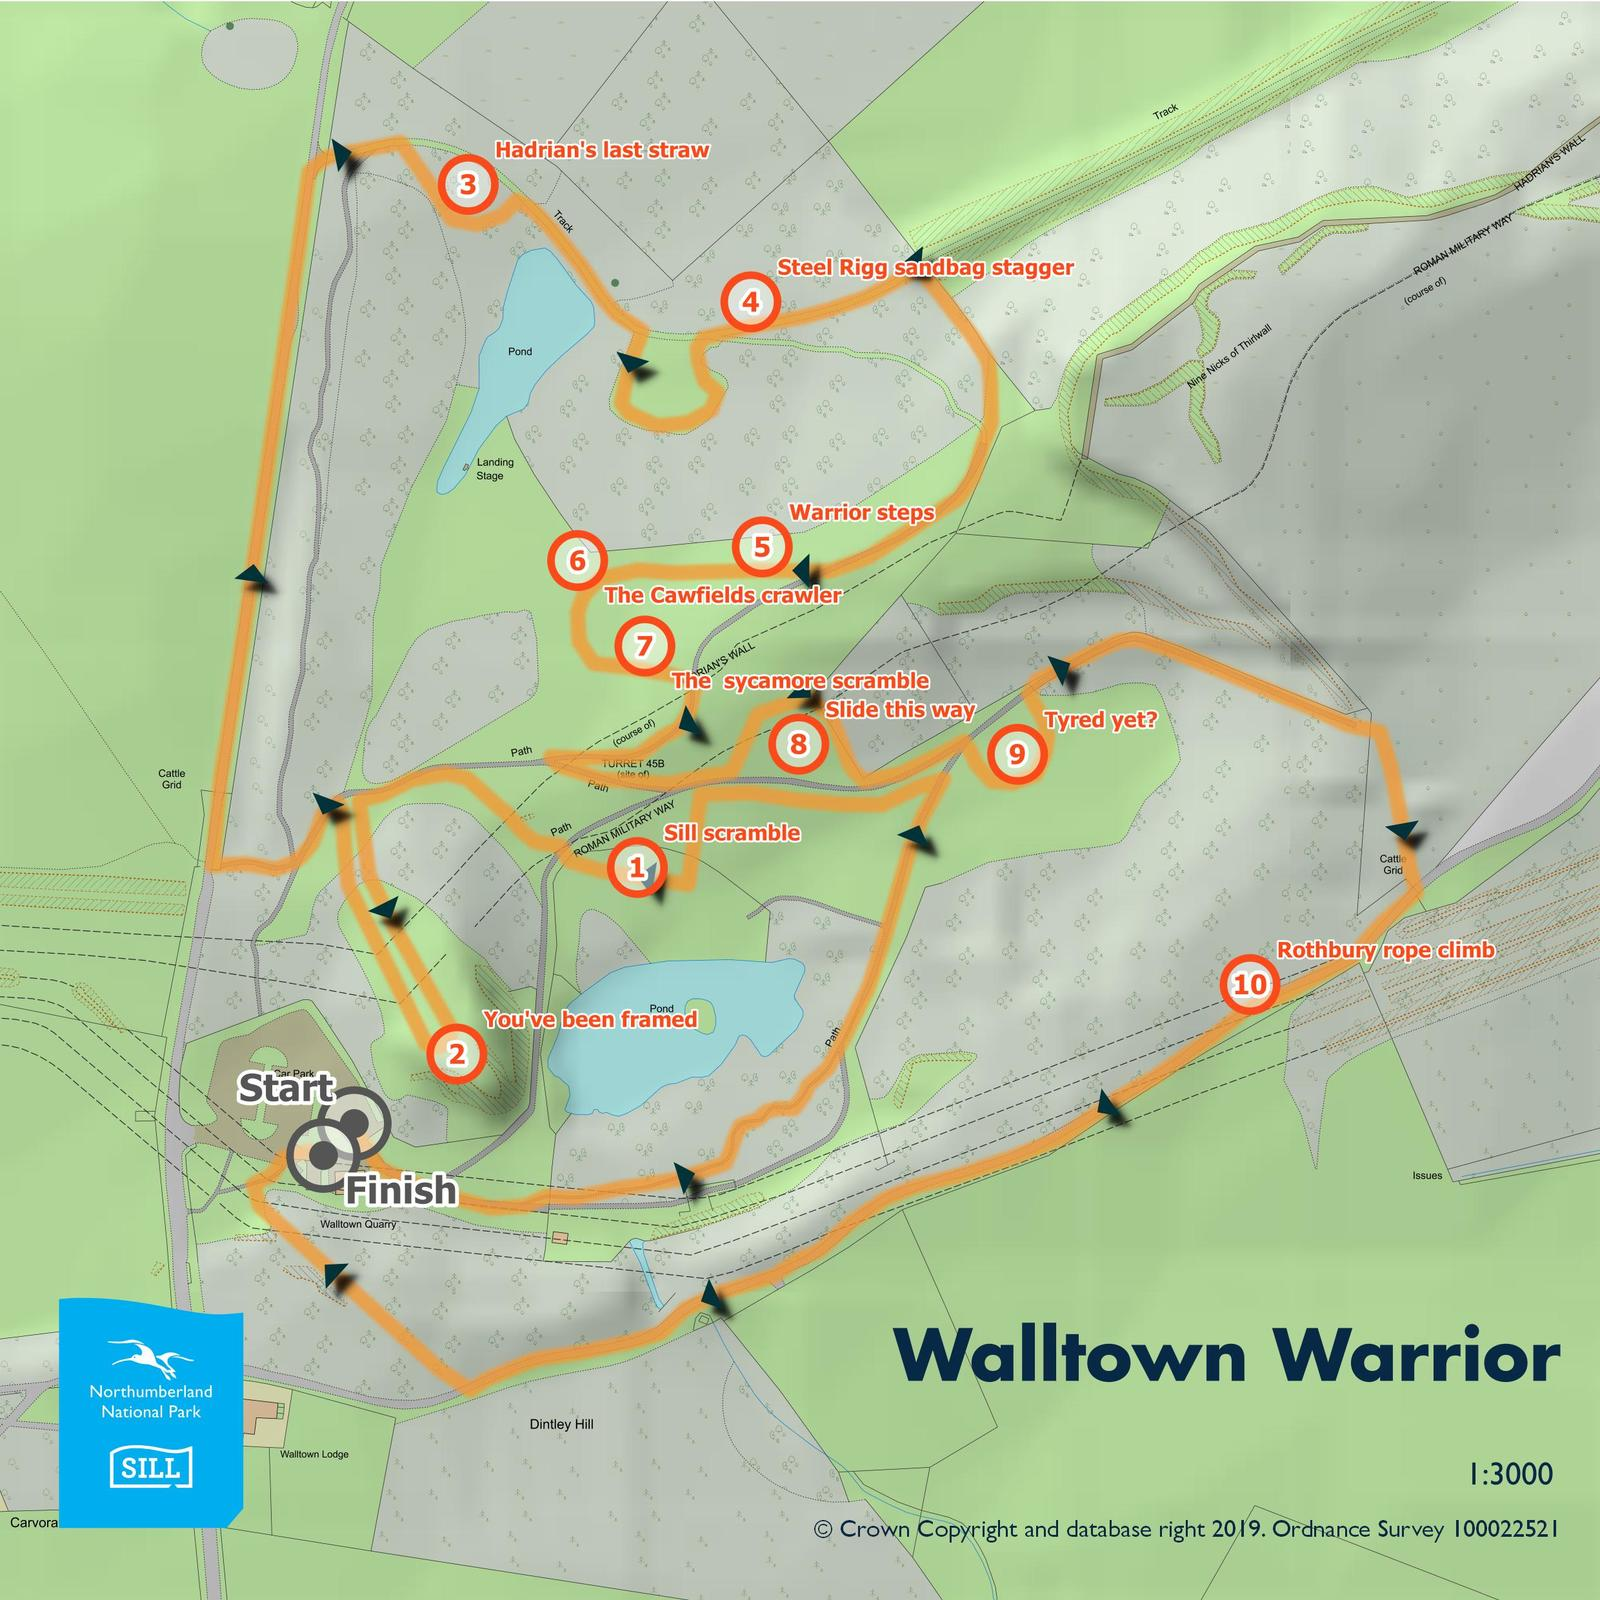 The route map for Walltown Warrior